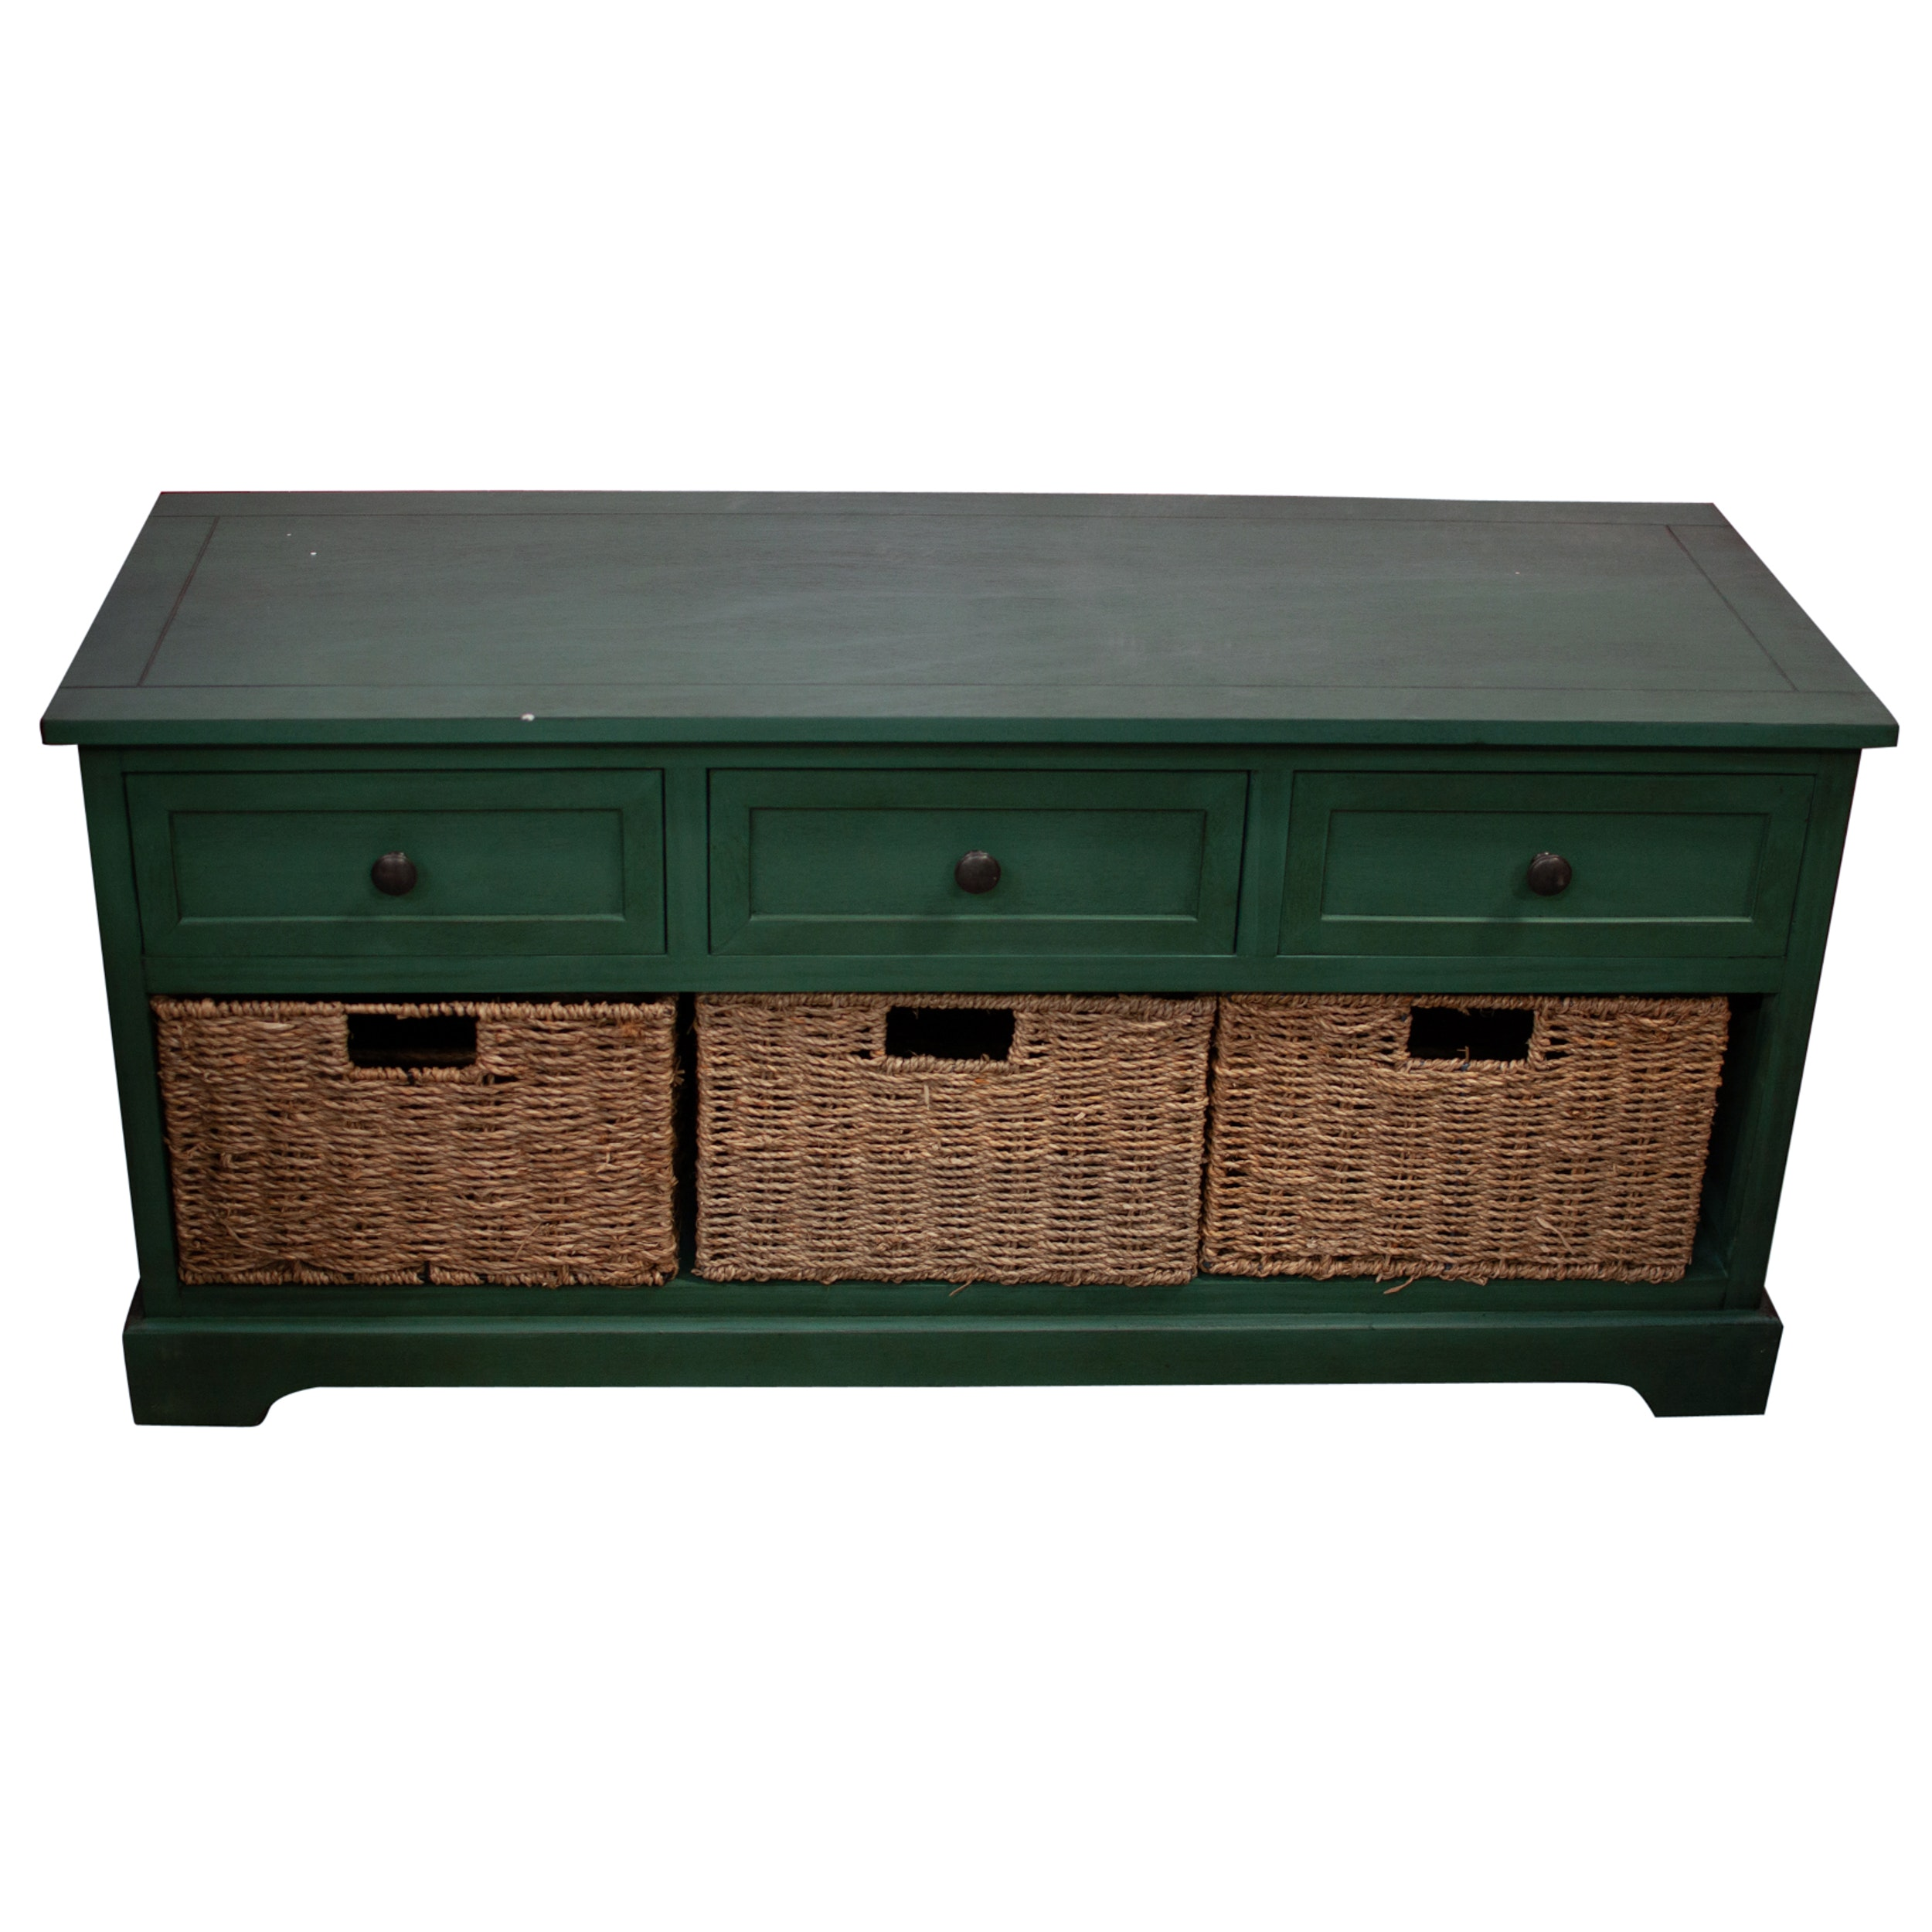 Storage Bin Console Cabinet With Drawers, Contemporary